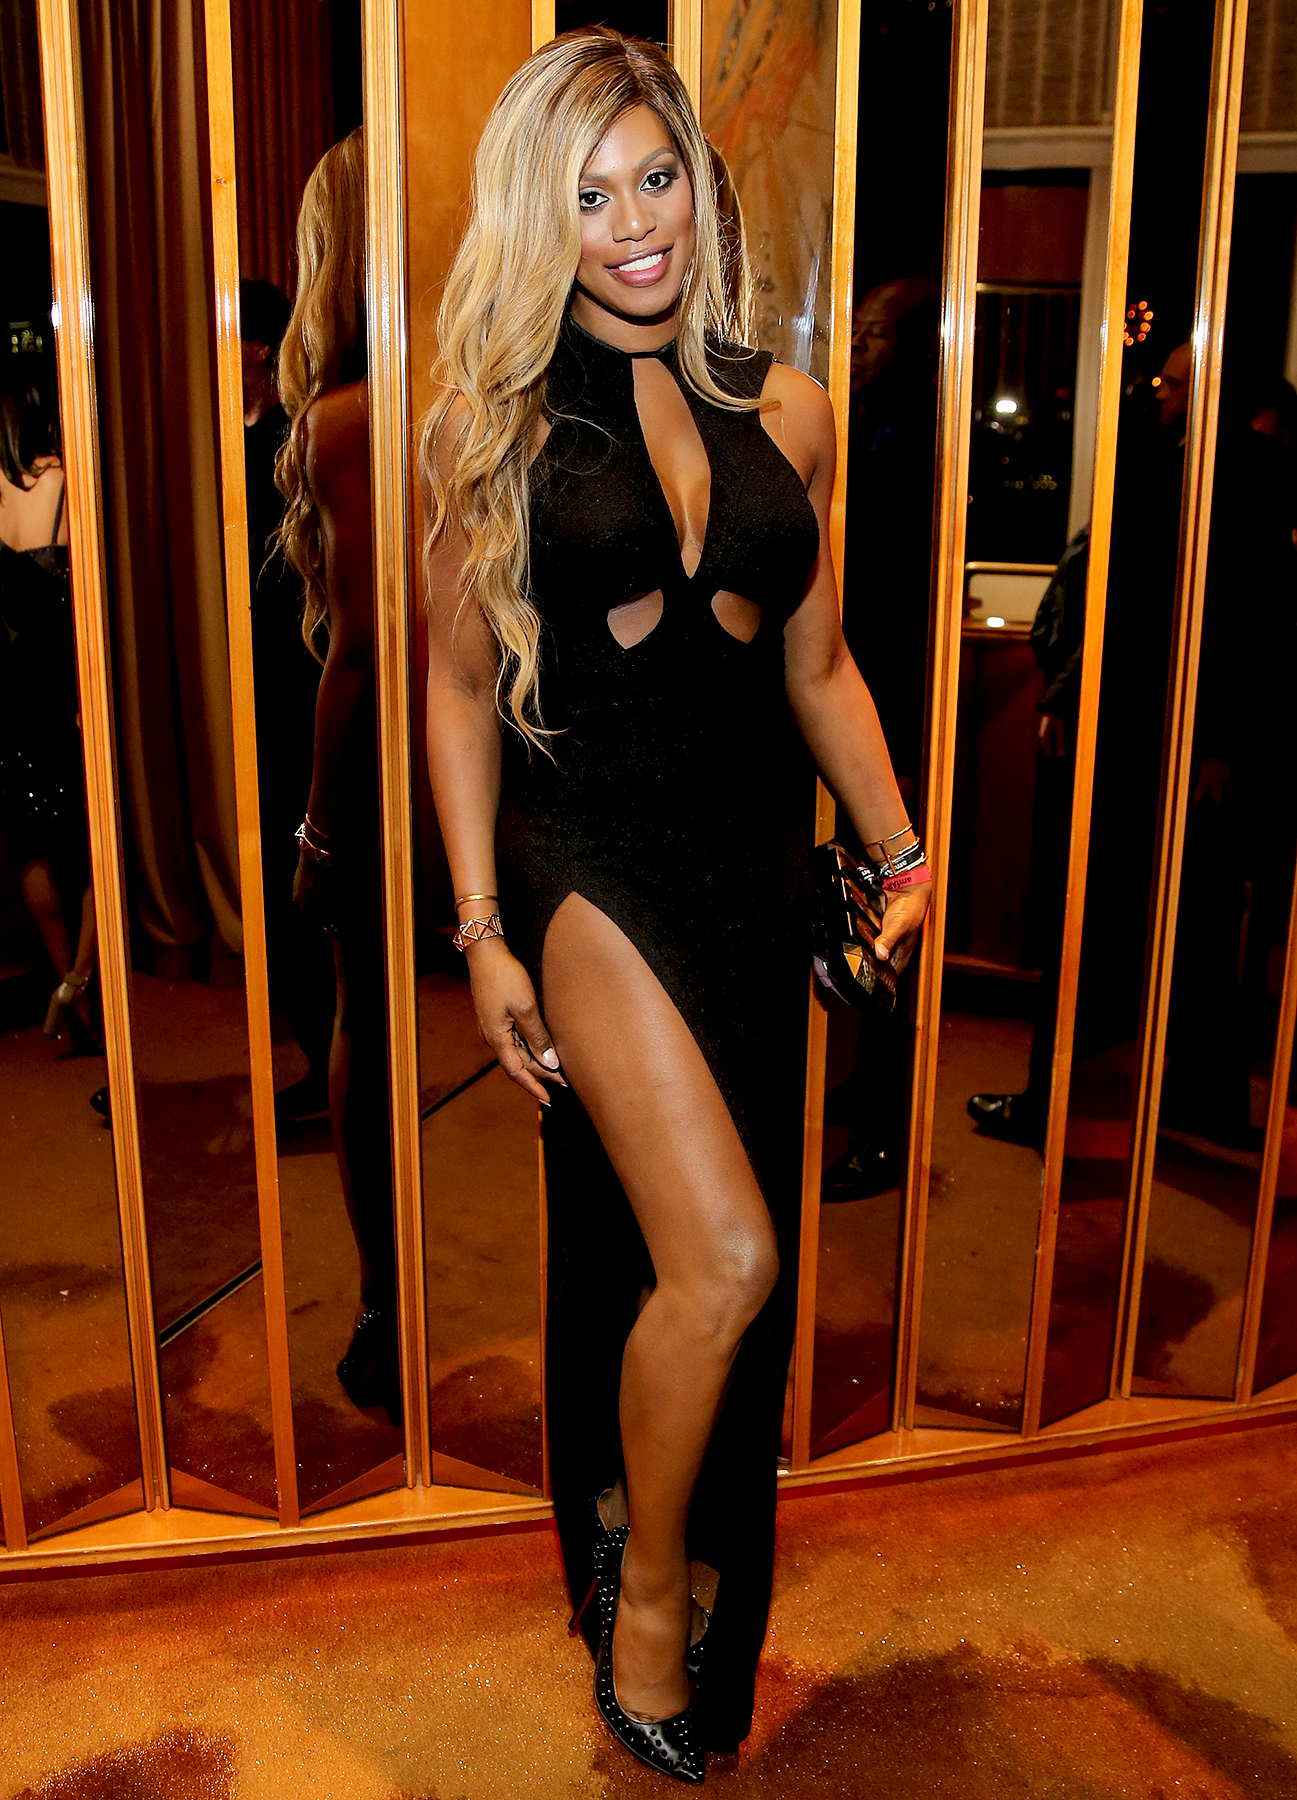 boom-boom-2015-laverne-cox - Katy Perry , Sarah Jessica Parker and several others hosted a soirée attended by Laverne Cox , Leonardo DiCaprio and Andy Cohen .